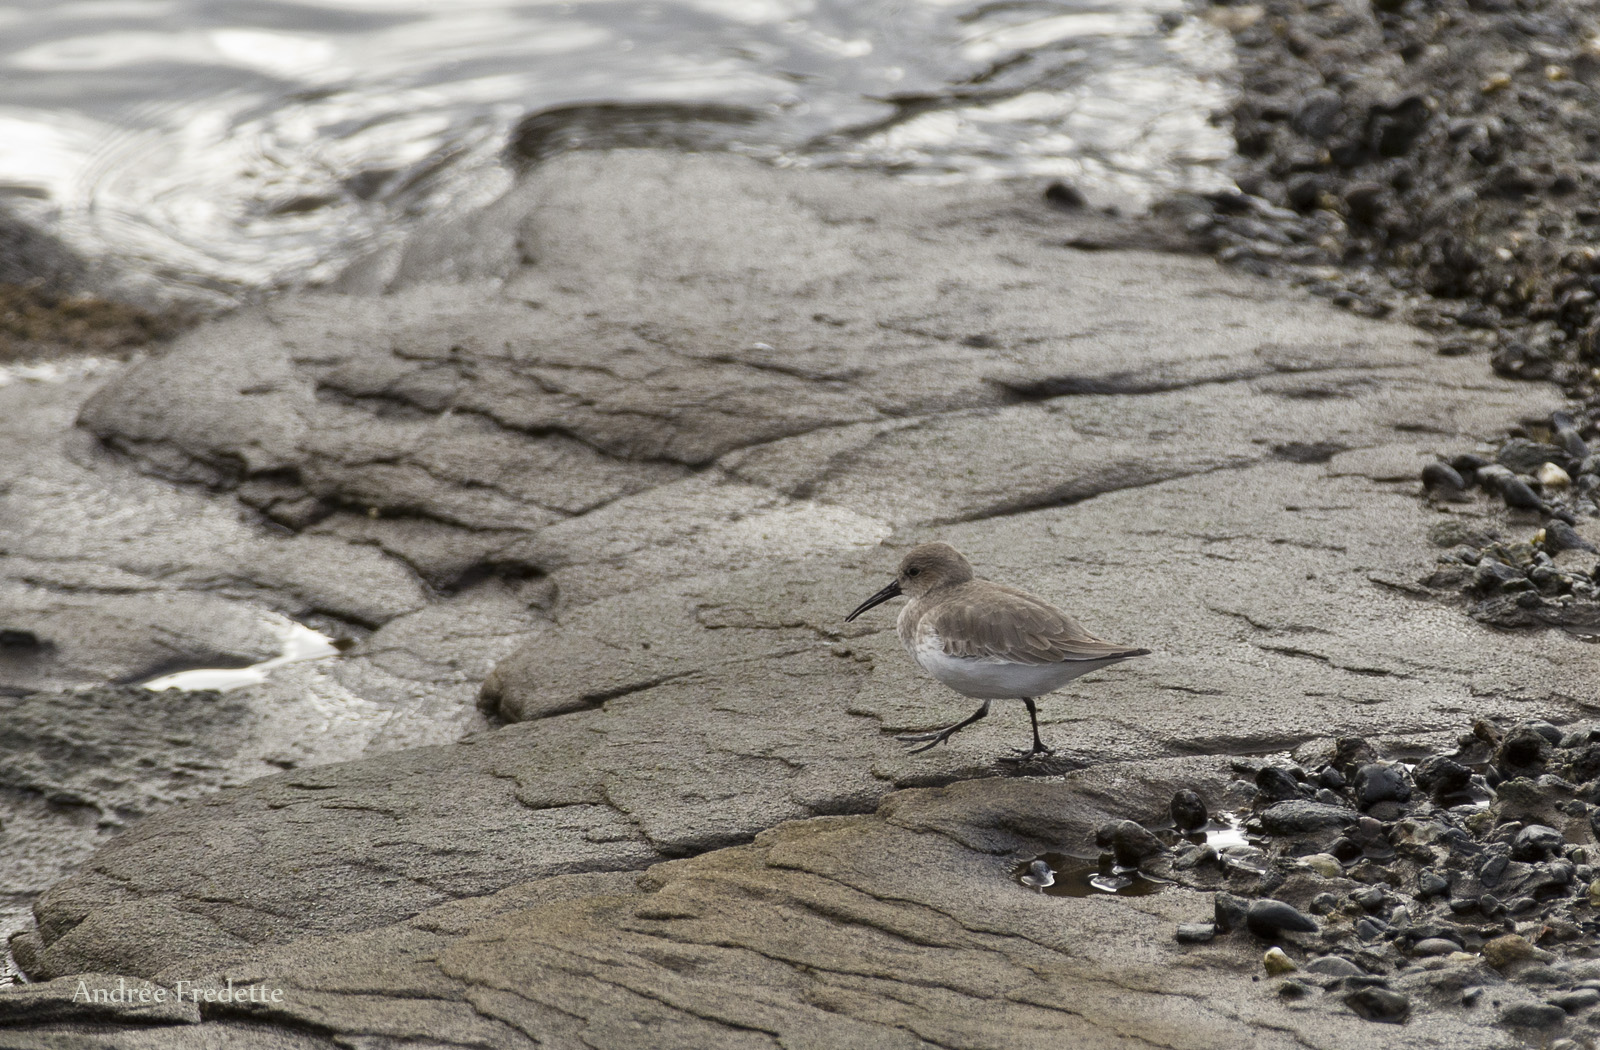 Sandpiper, East Point, Saturna Island, BC. Photo by Andrée Fredette